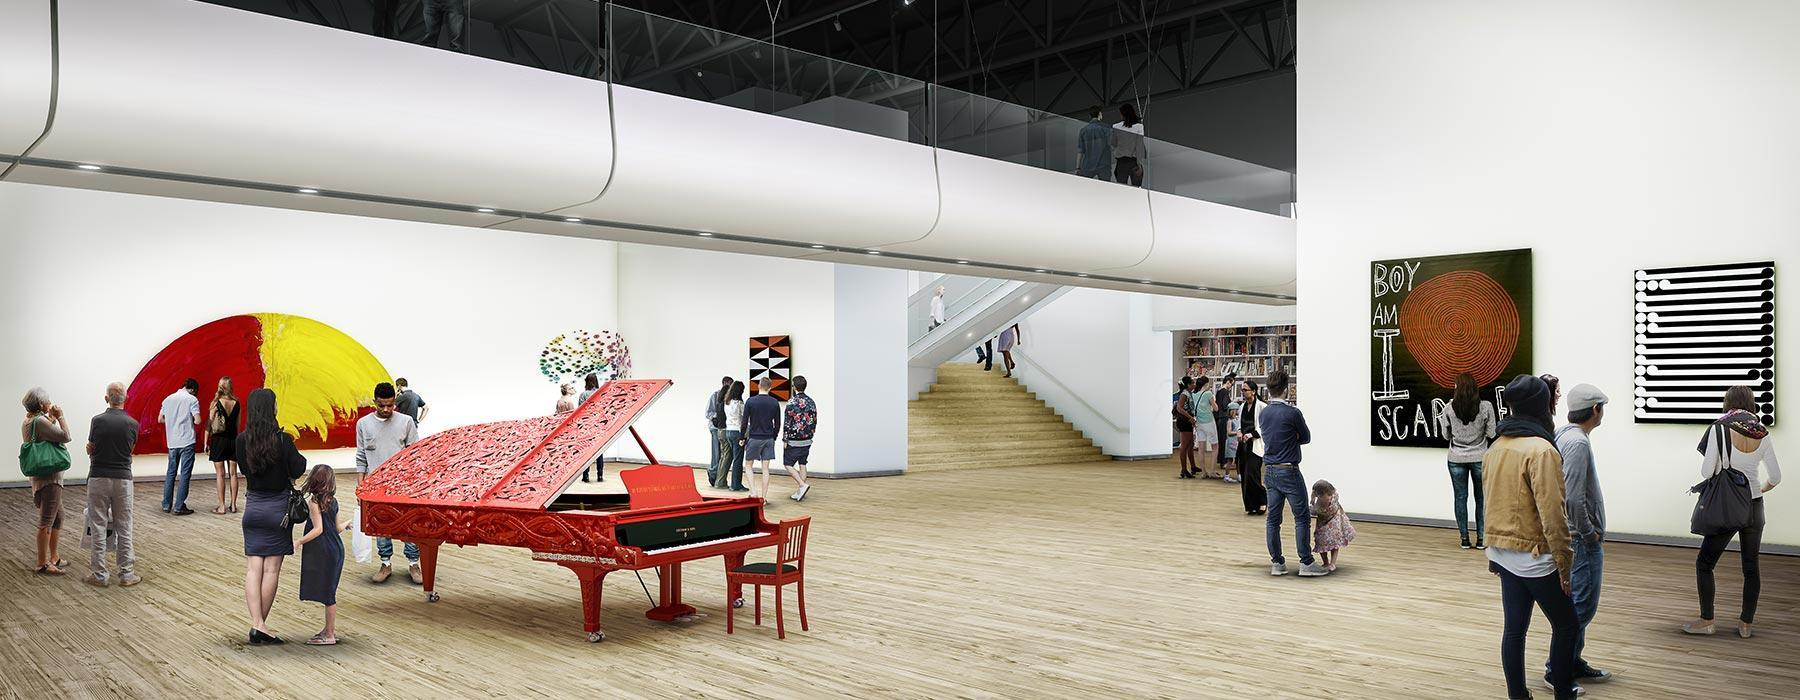 Mock-up image of what the new gallery space will look like